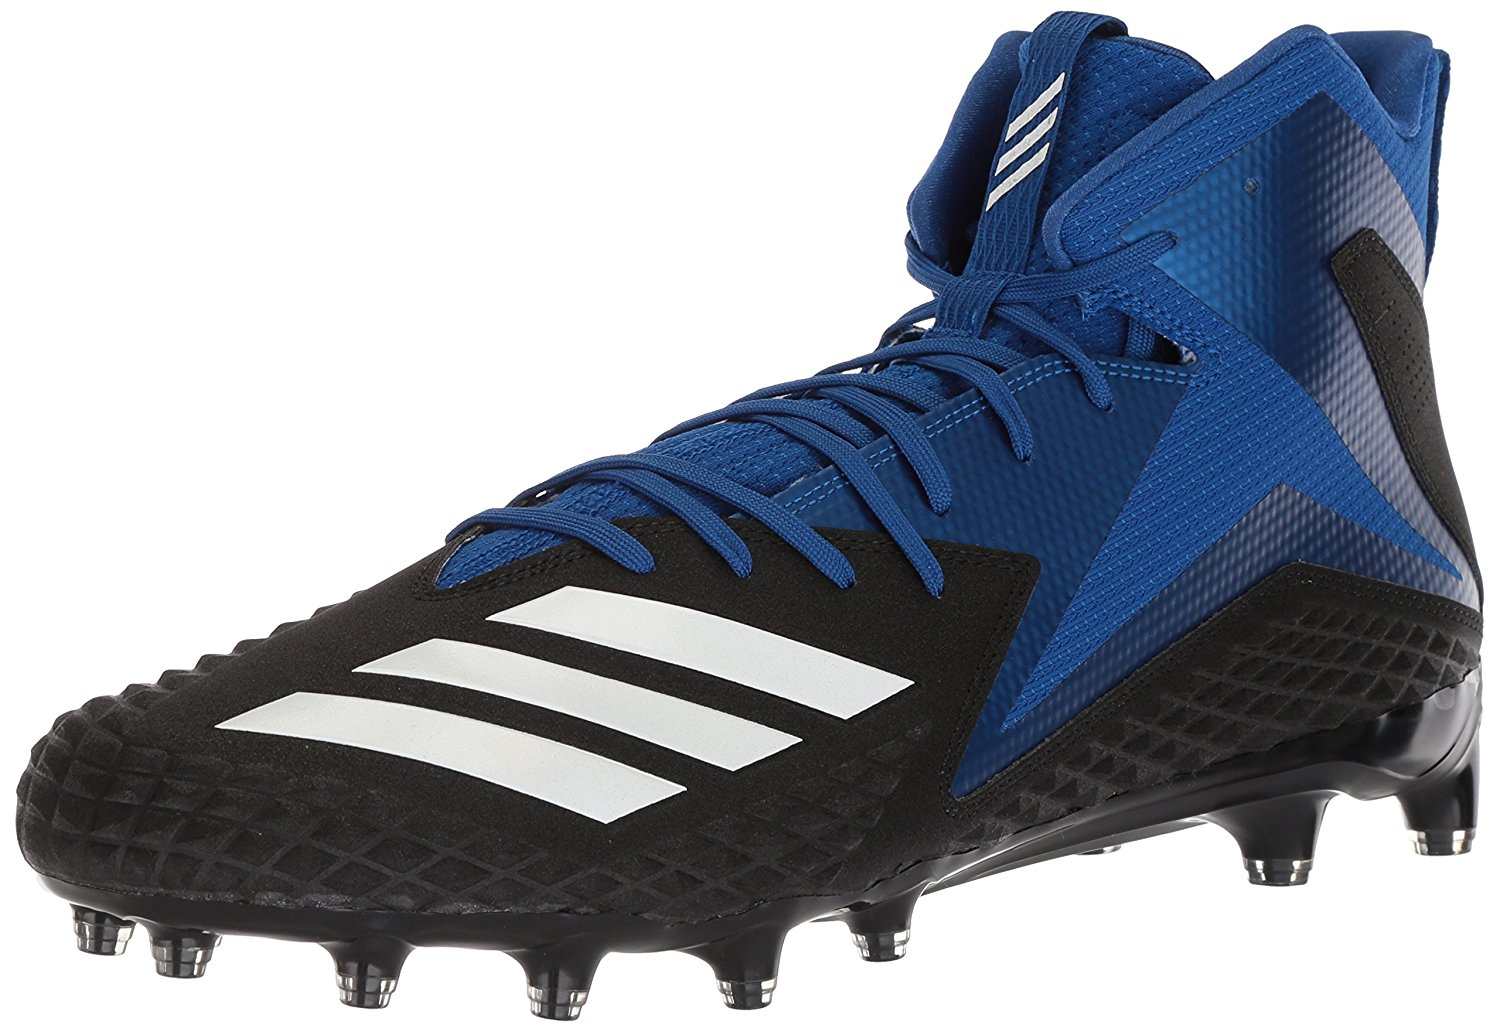 Details about Adidas Mens Freak X Carbon mid Low Top Lace Up Soccer Sneaker